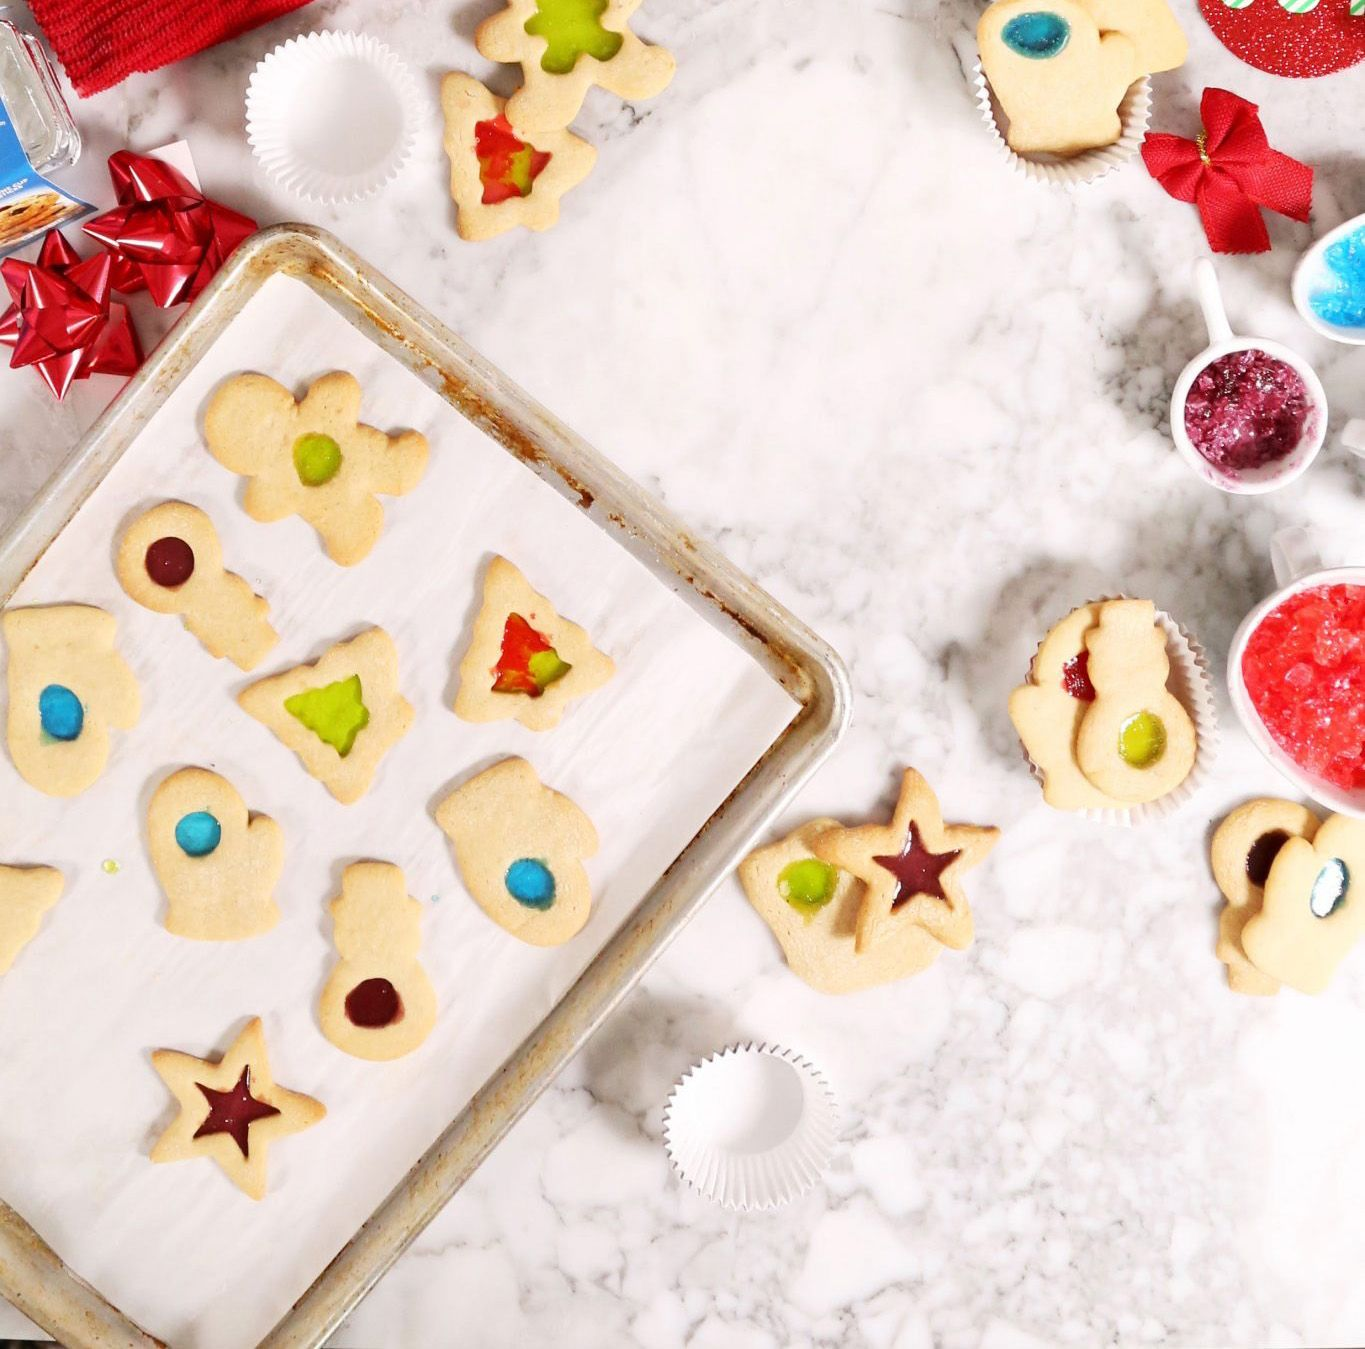 Prettiest Christmas Cookies - Delicious Christmas Cookie Recipes